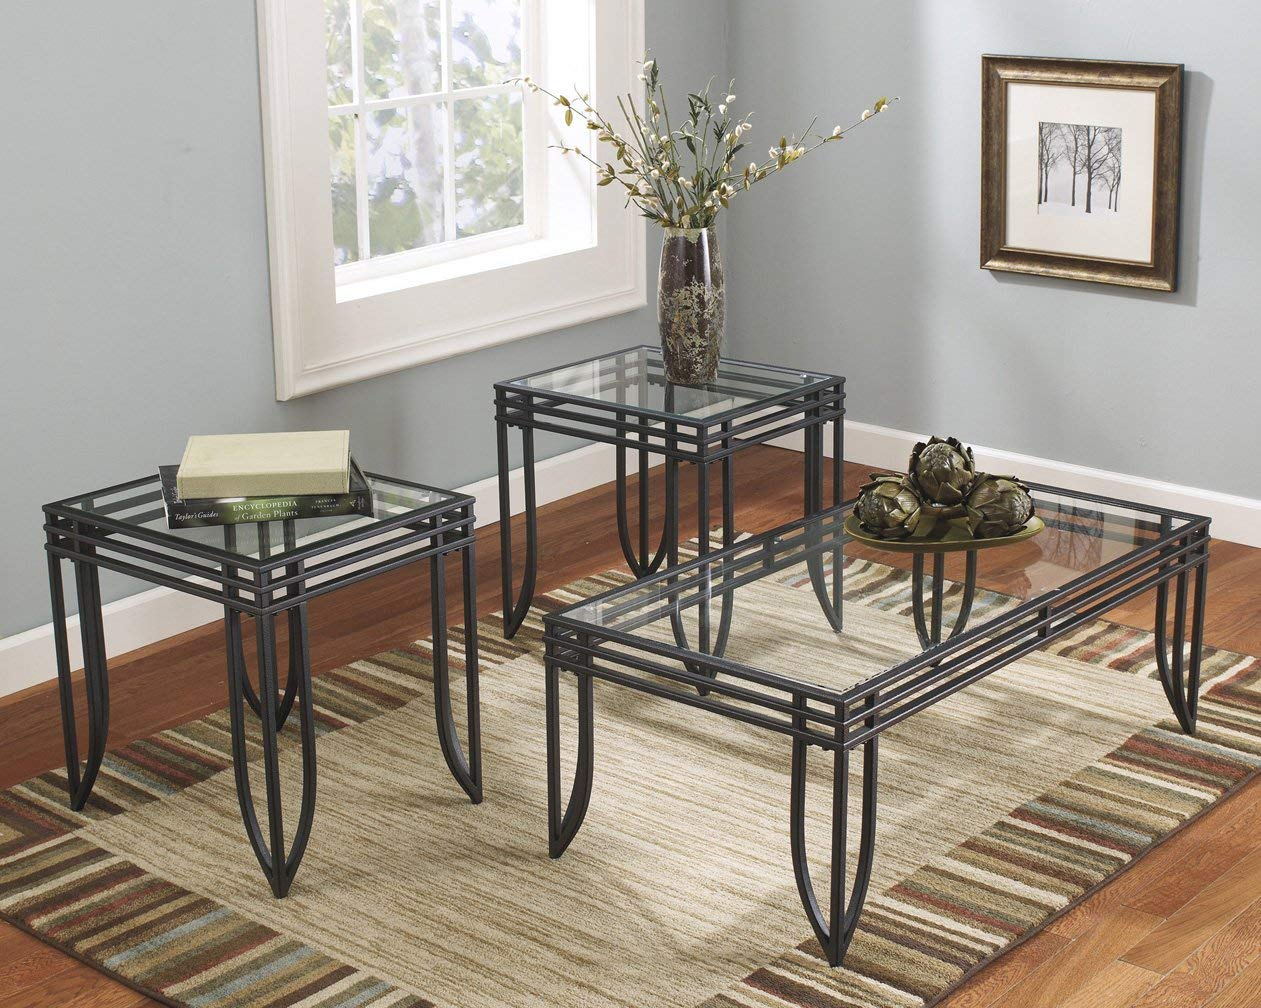 home sense bedding probably outrageous great piece set coffee roundhill furniture matrix metal frame table end tables accent kitchen dining resin garden mirrored living room ethan